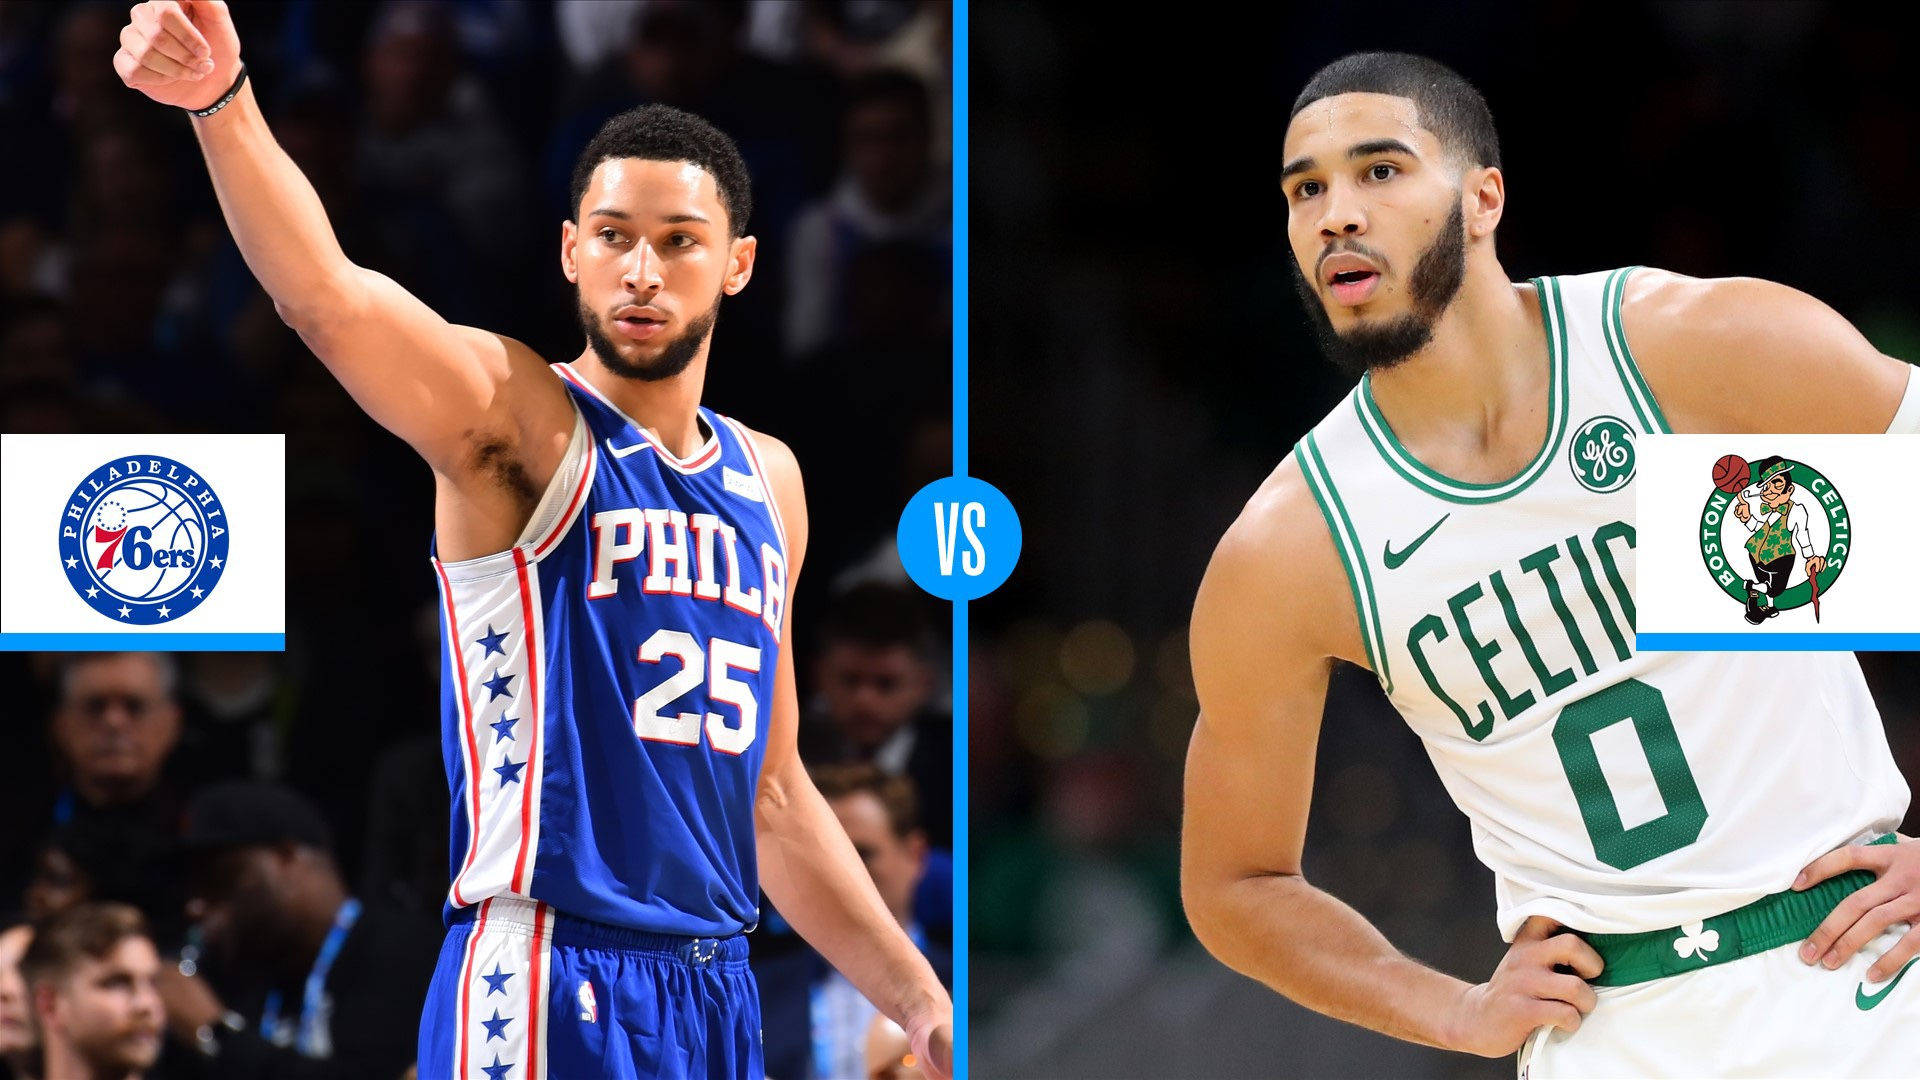 Who Would You Rather Have? Ben Simmons Vs Jayson Tatum